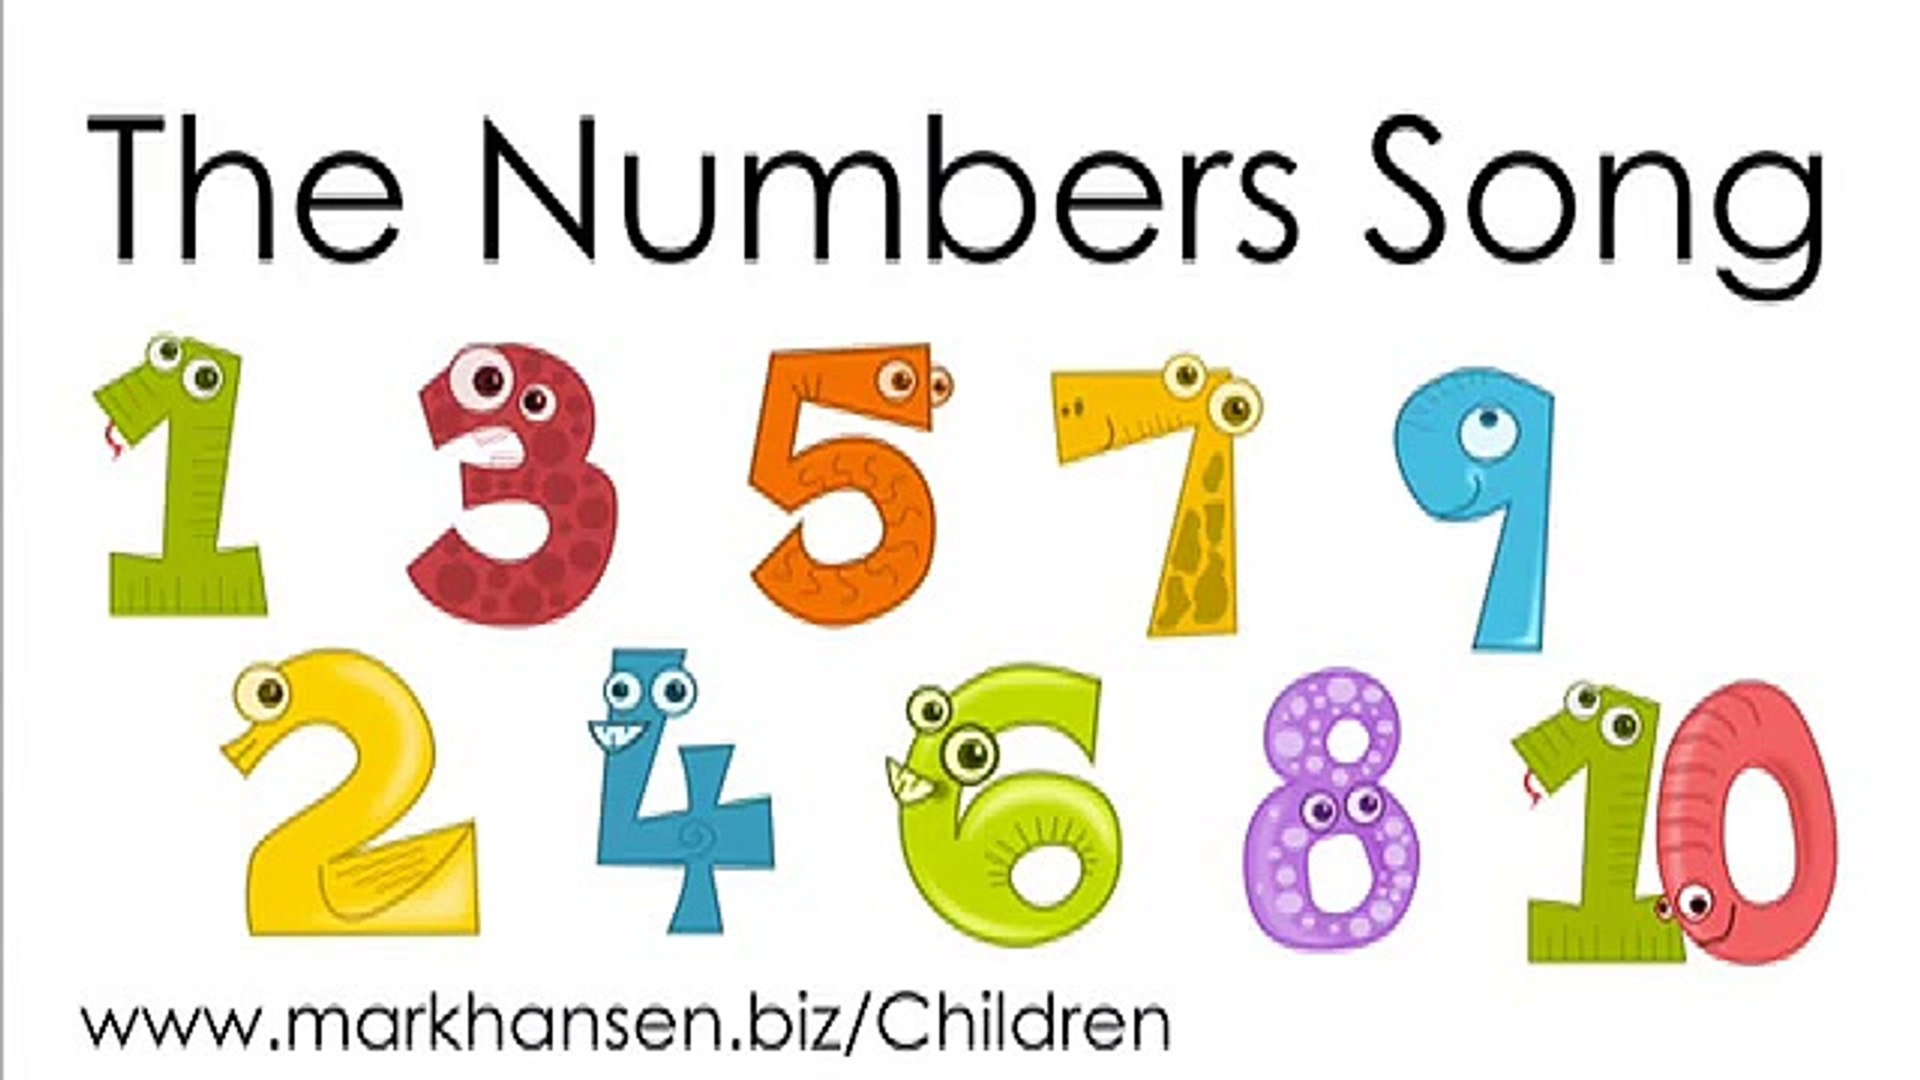 Counting Songs for Children 1-10 Numbers to Song Kids Kindergarten Toddle